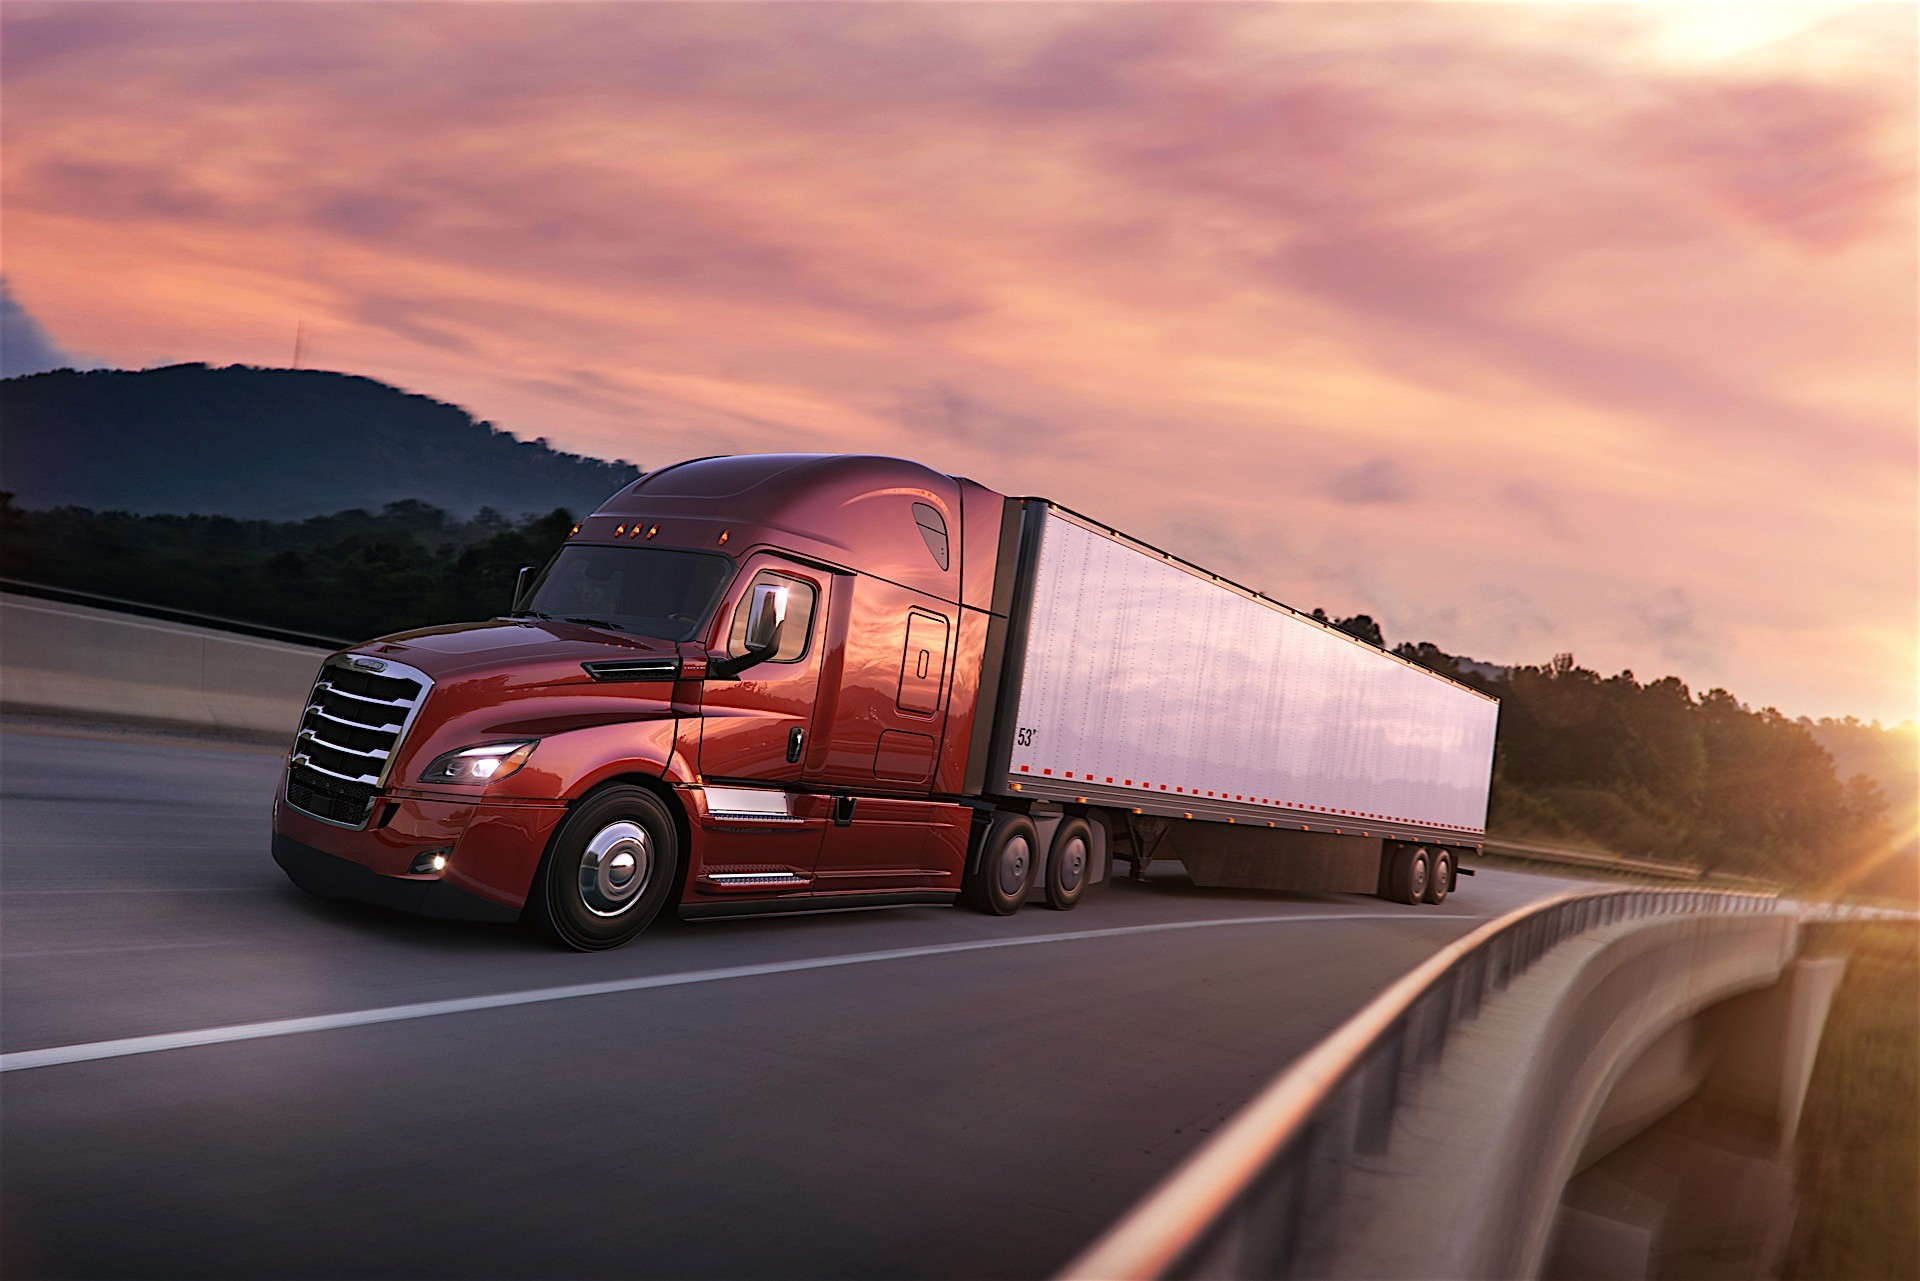 Dsc besides Photo besides Spyder Industries Announces New Product Lines likewise Maxresdefault further B Dc A Bce Aab Ed F. on freightliner family